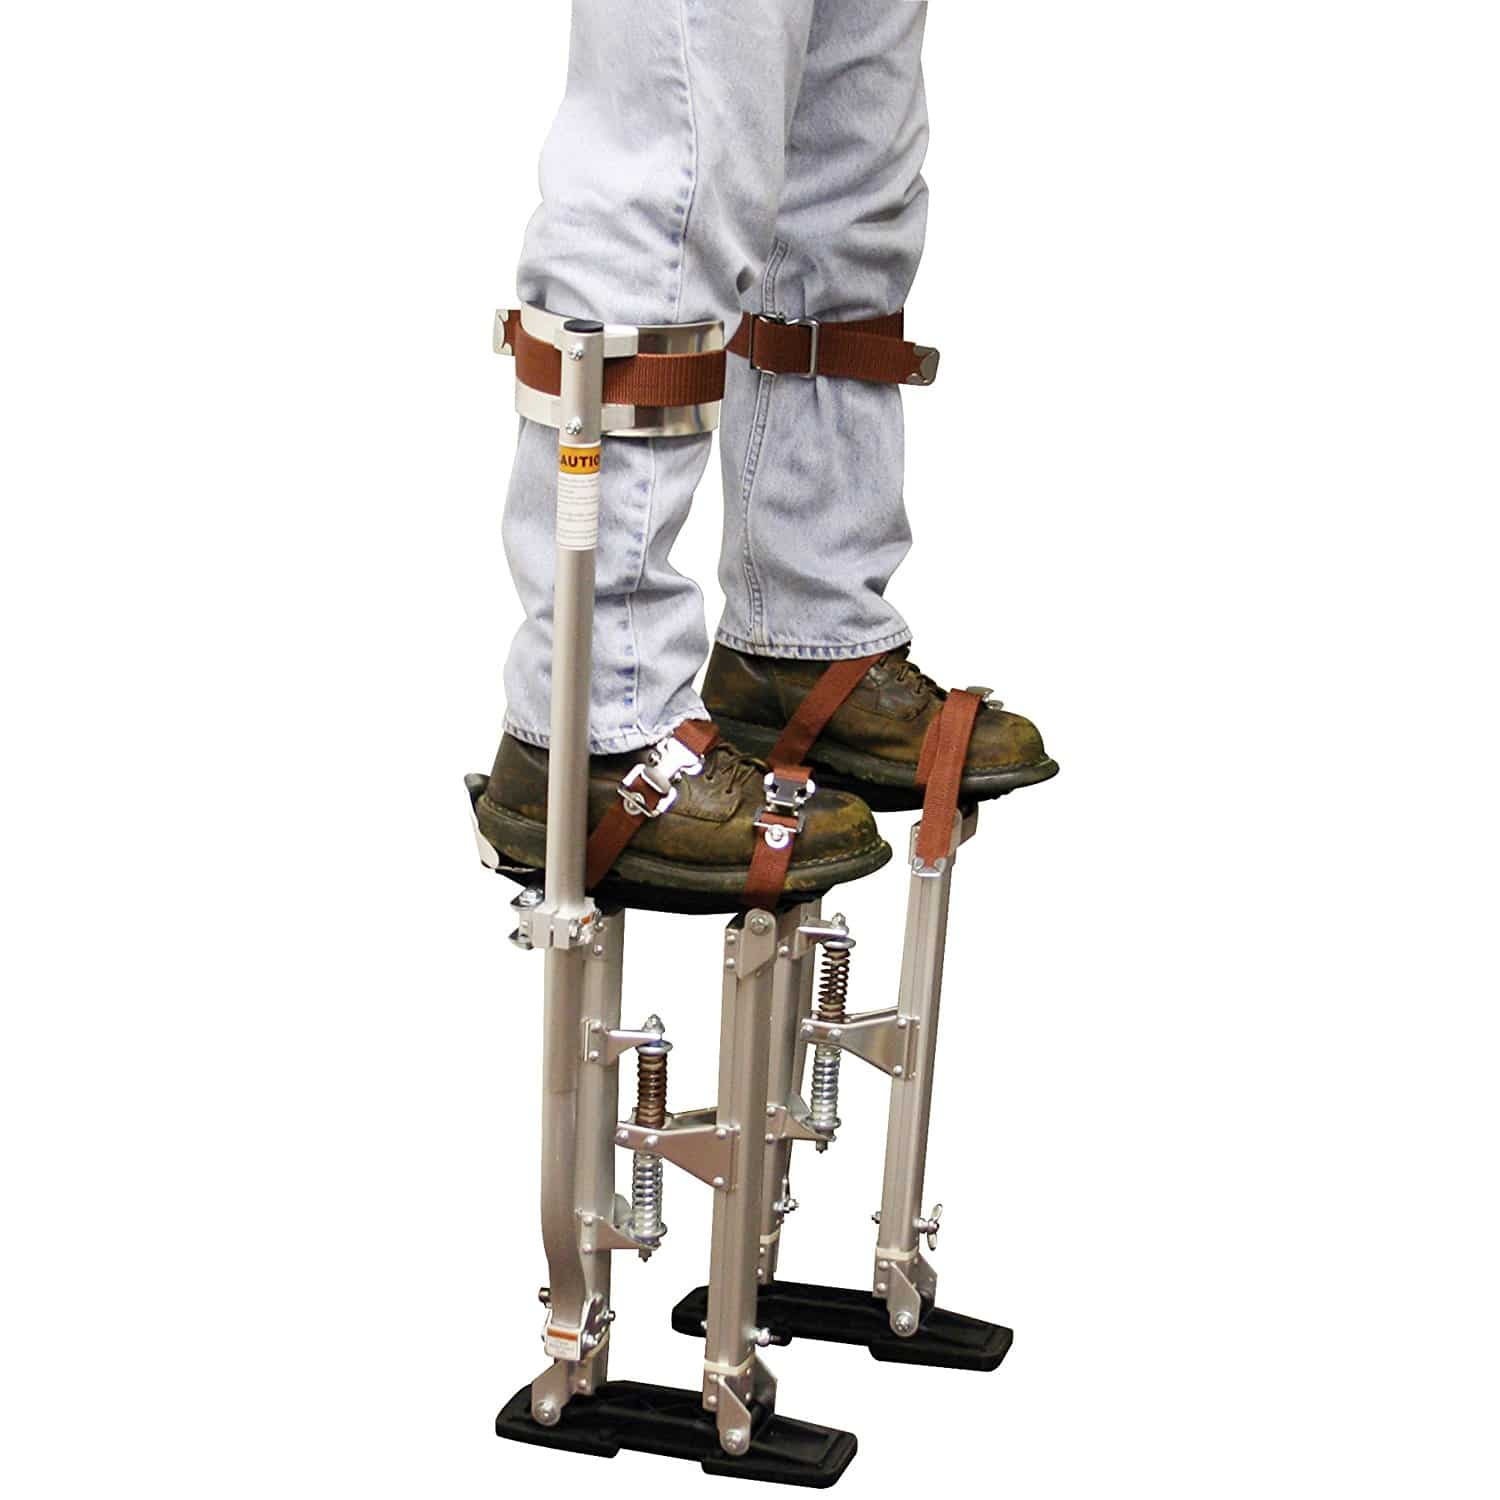 reviews and comparisons of walking stilts